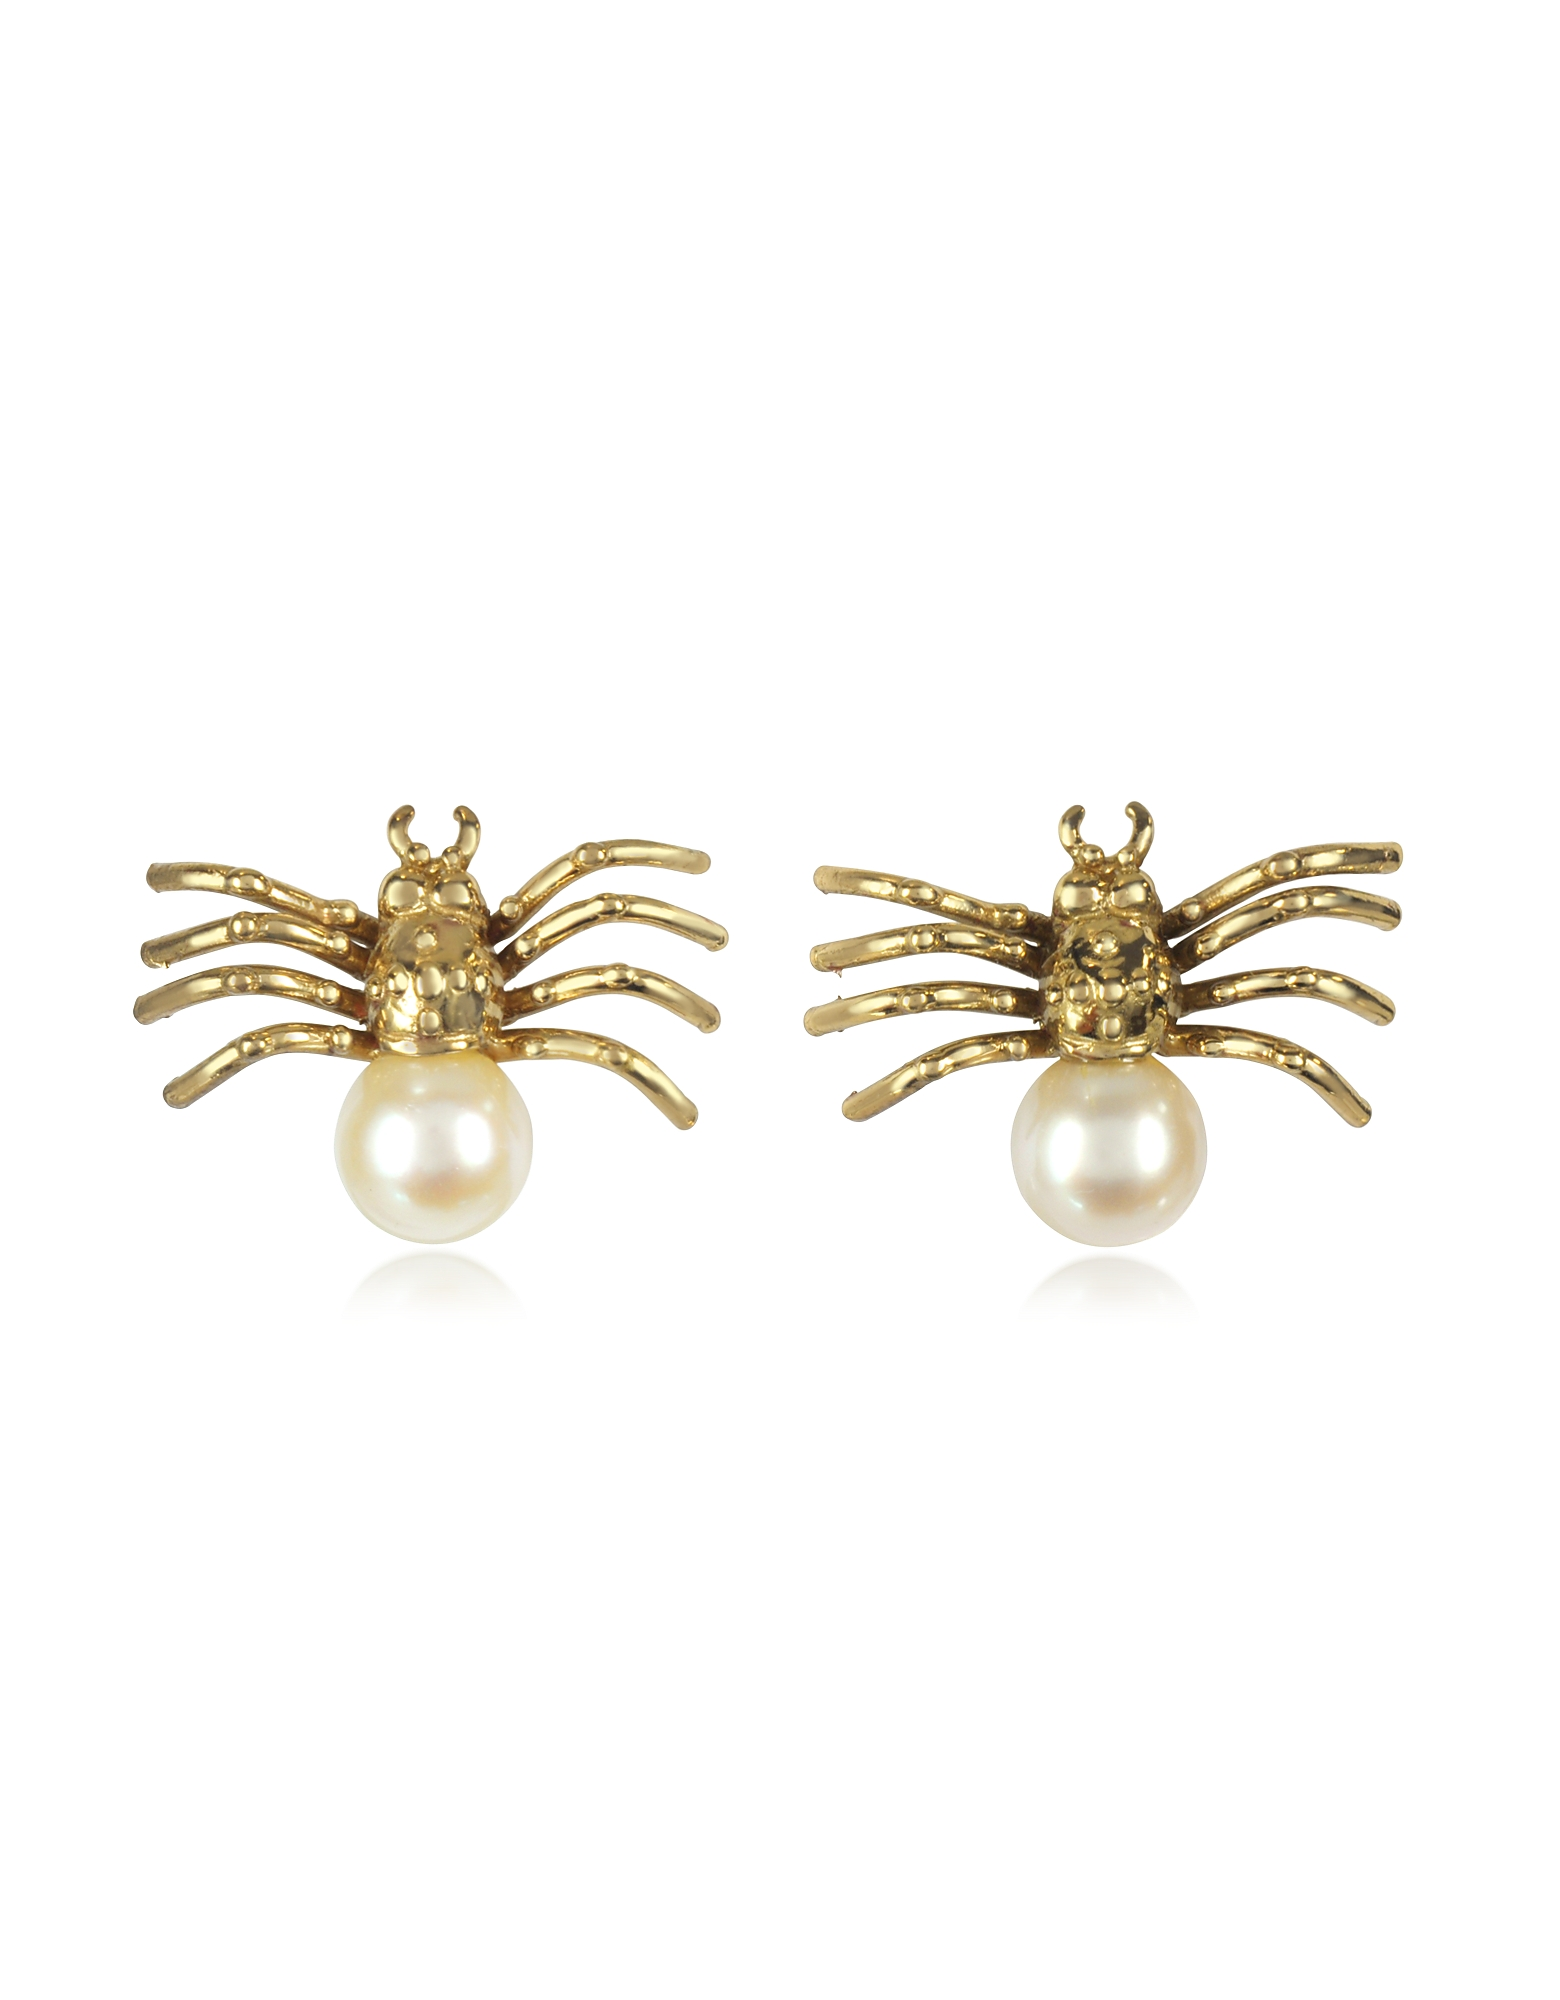 Bernard Delettrez Earrings, Bronze Spider Earrings with Pearl